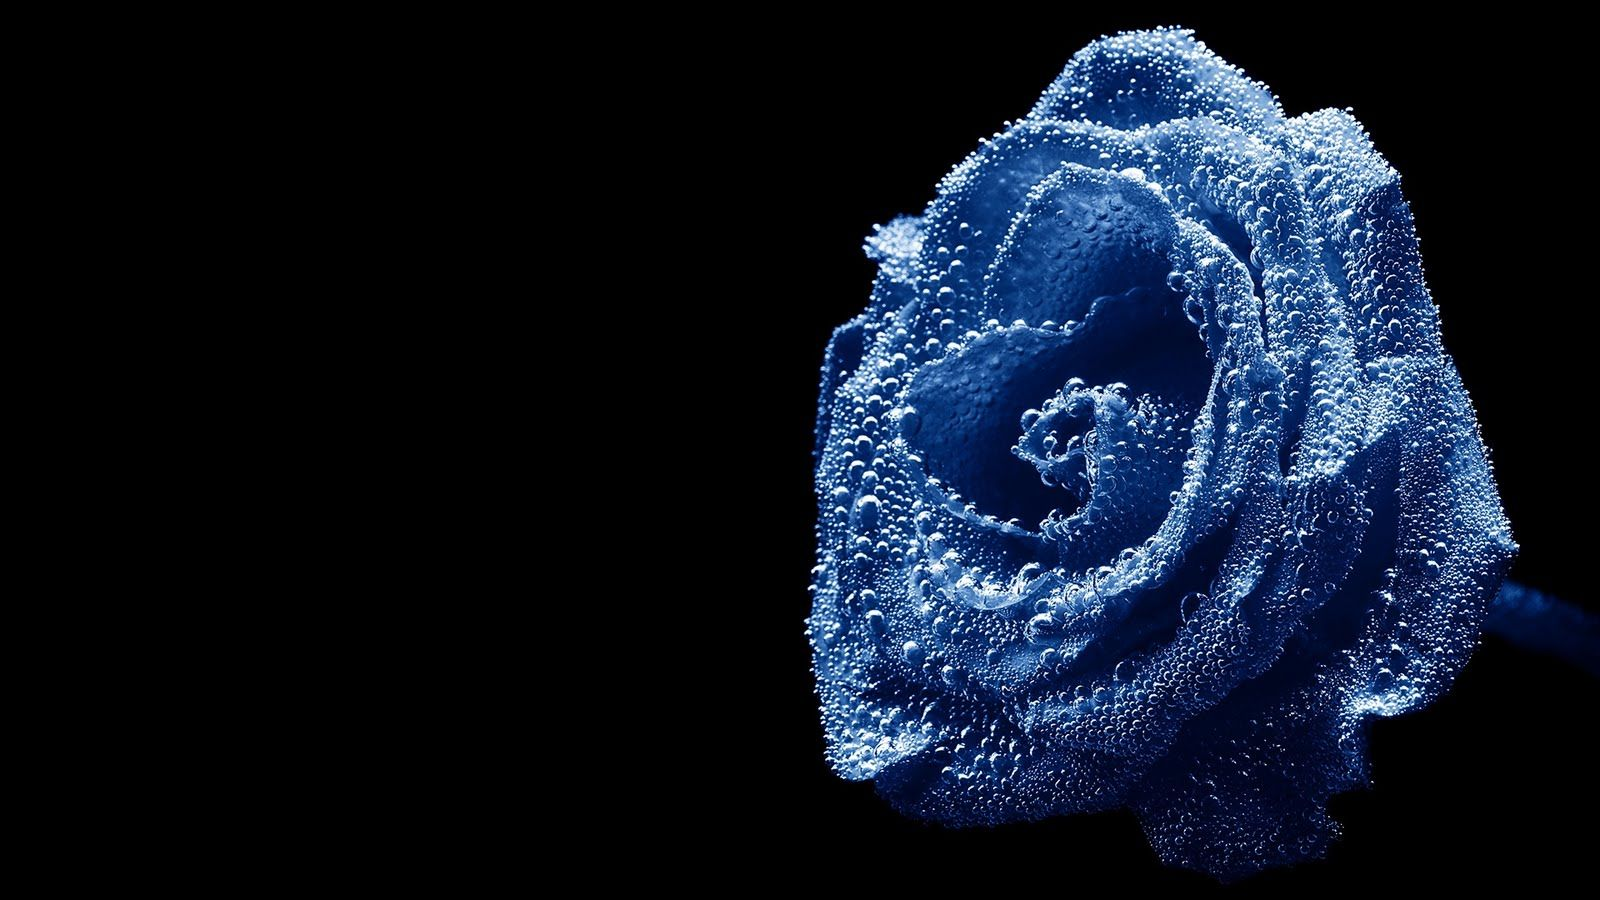 blue roses | blue rose hd wallpaper water drops over beautiful blue